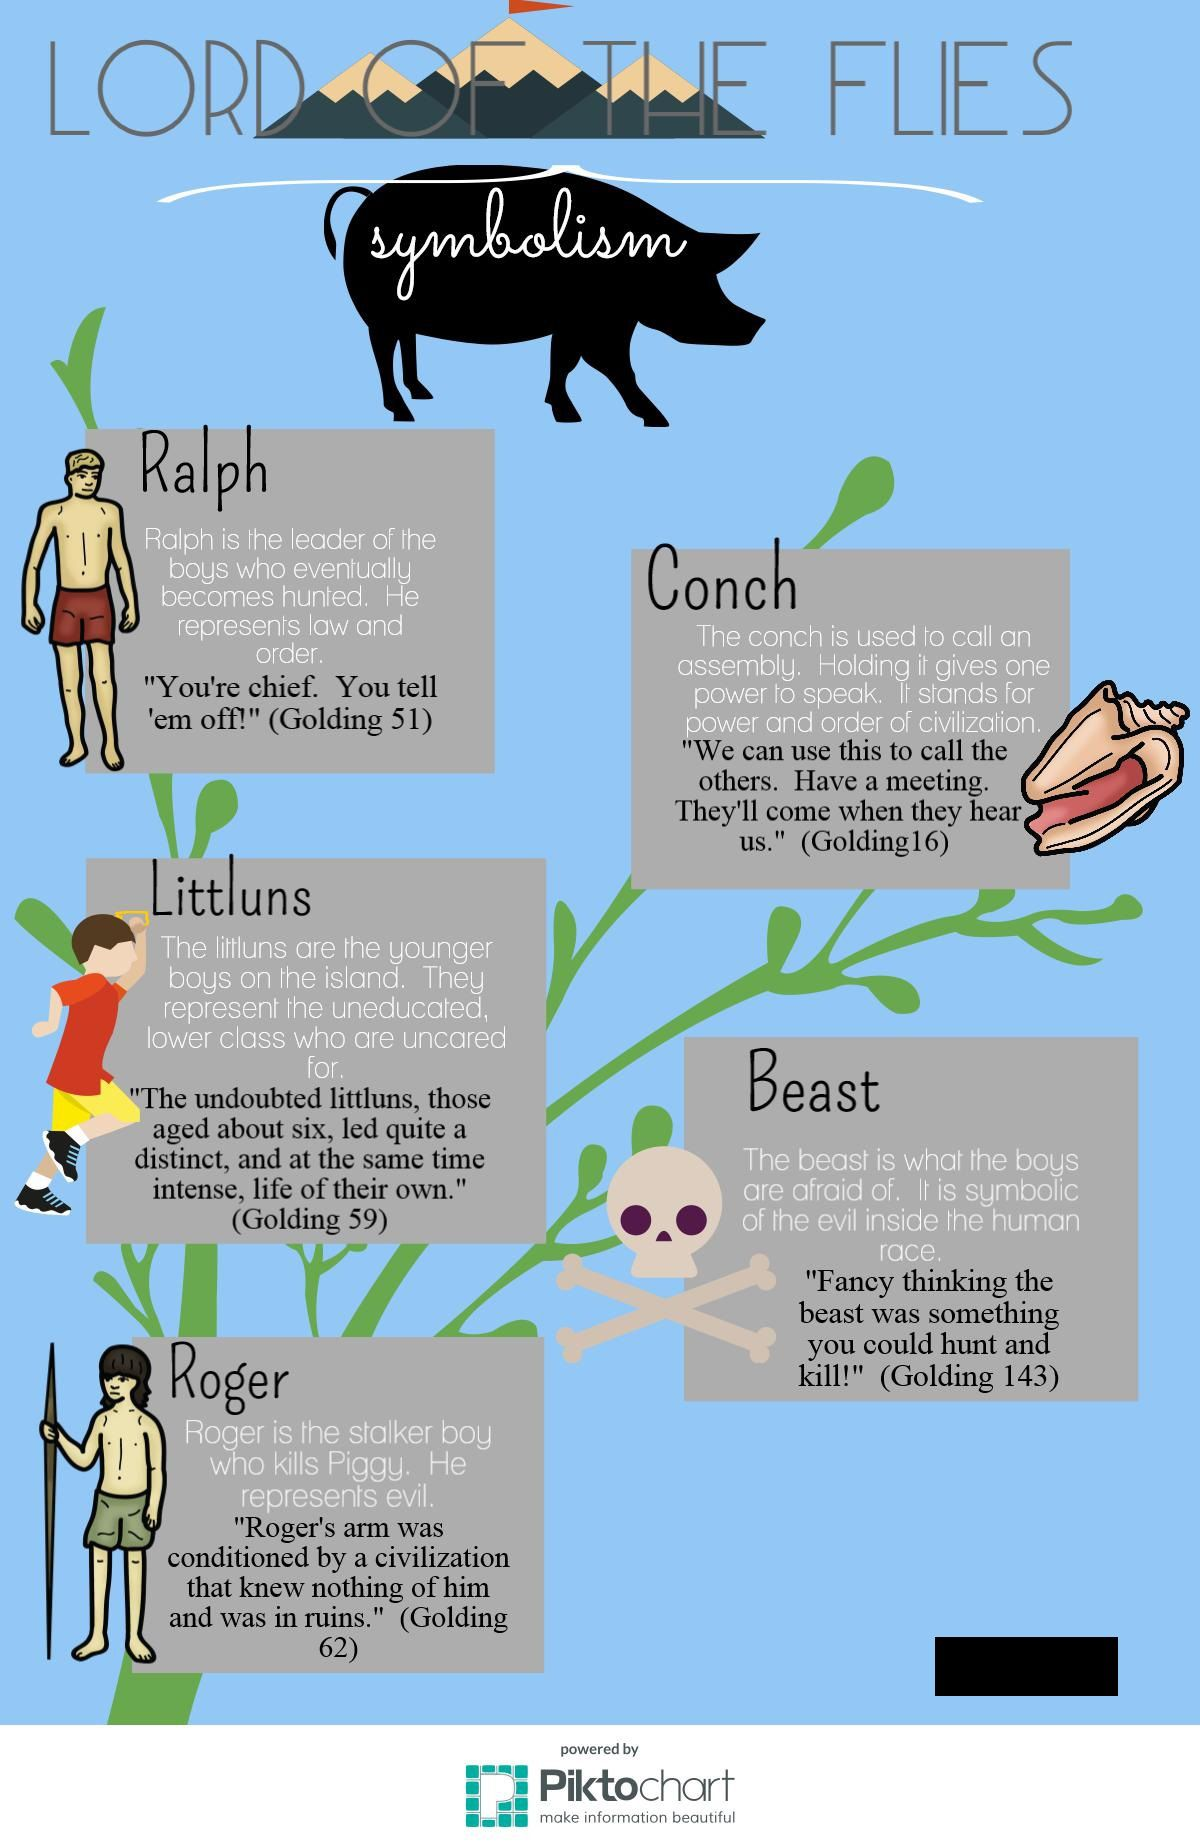 Lord of the flies symbolism lotf pinterest lord gcse lord of the flies symbolism biocorpaavc